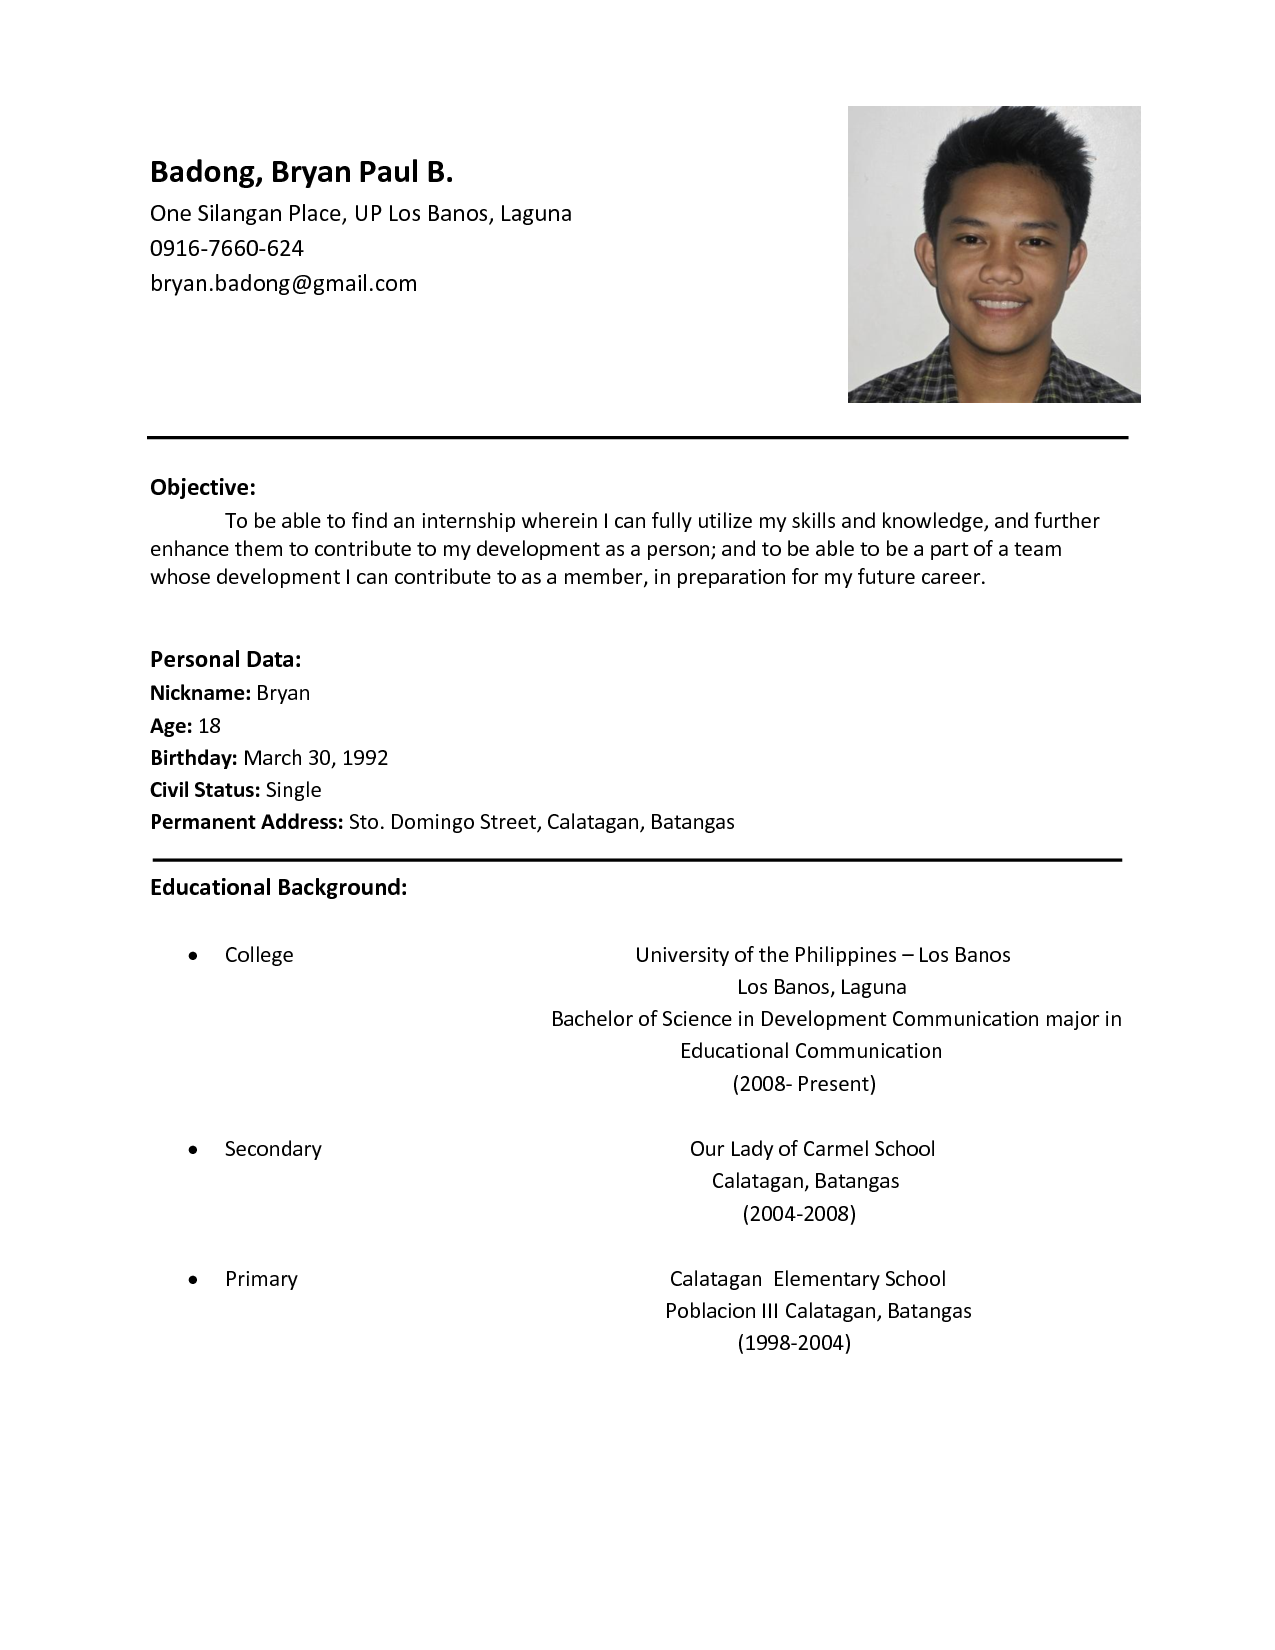 resume sample rich image and wallpaper